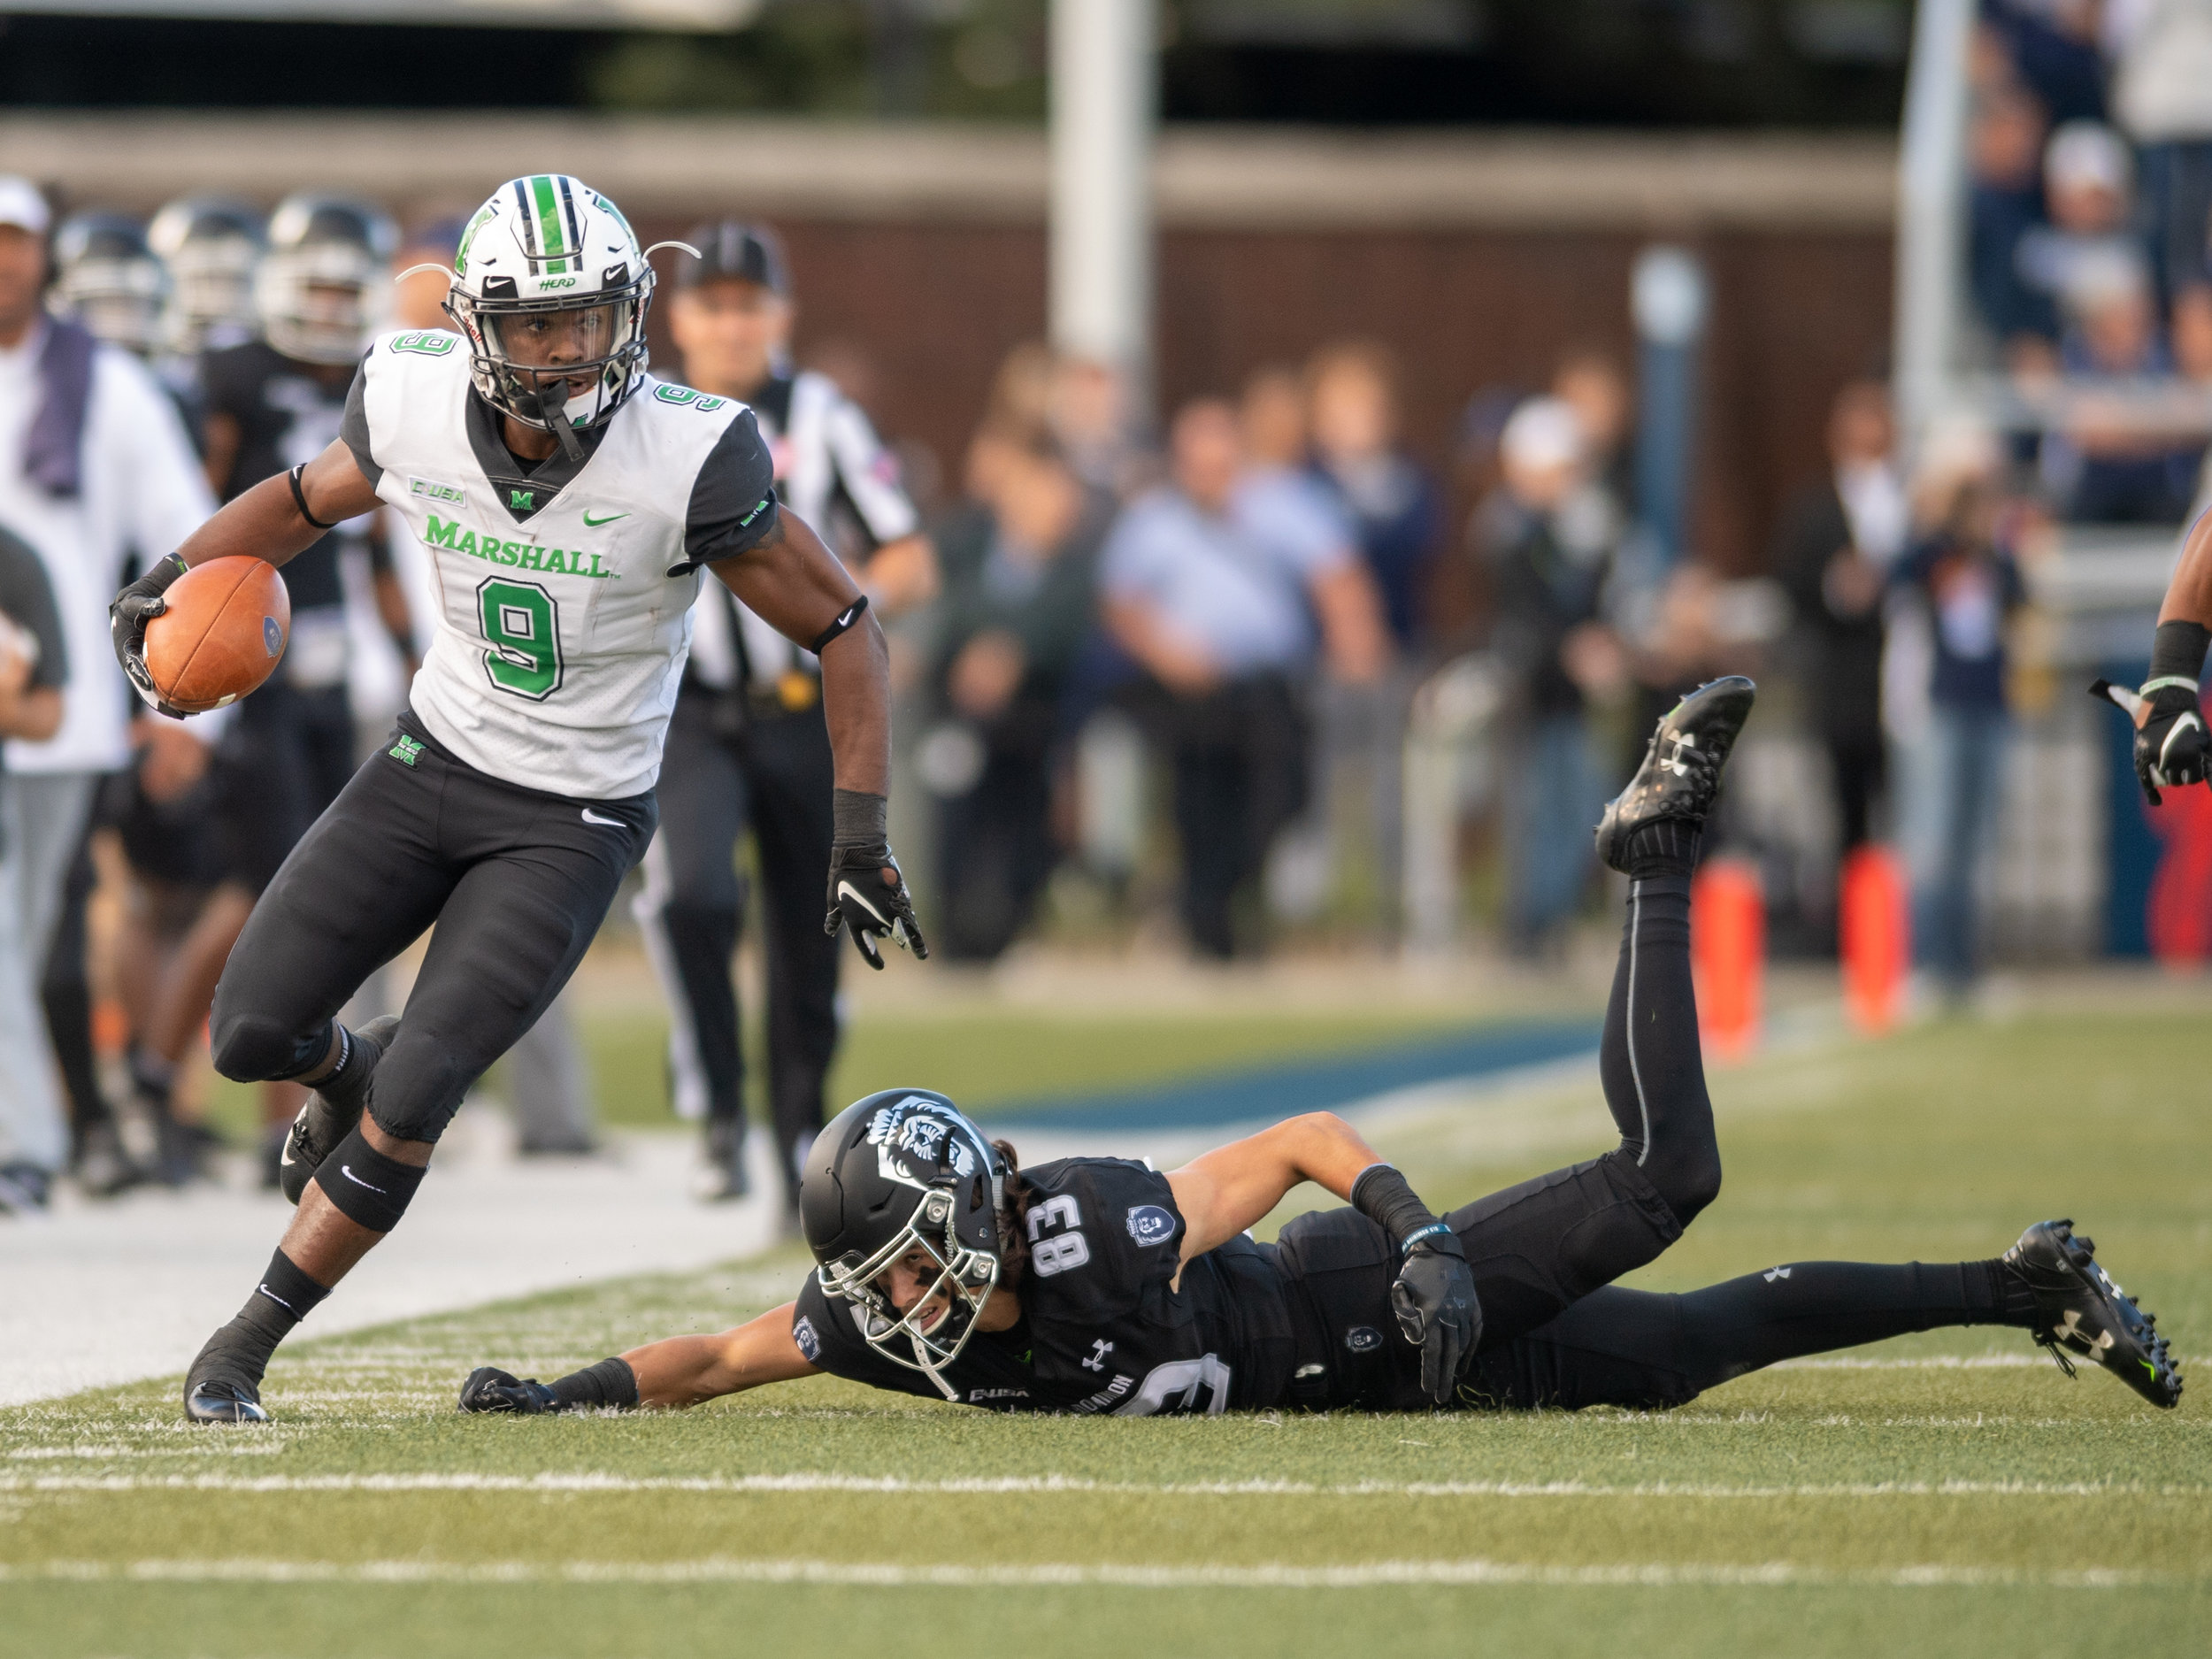 Marshall Thundering Herd wide receiver Marcel Williams (9) avoids a tackle by Old Dominion Monarchs wide receiver Jake Herslow (83) during the Saturday, Oct. 13, 2018 game held at Old Dominion University in Norfolk, Virginia. Marshall leads Old Dominion 14 to 3 at halftime.